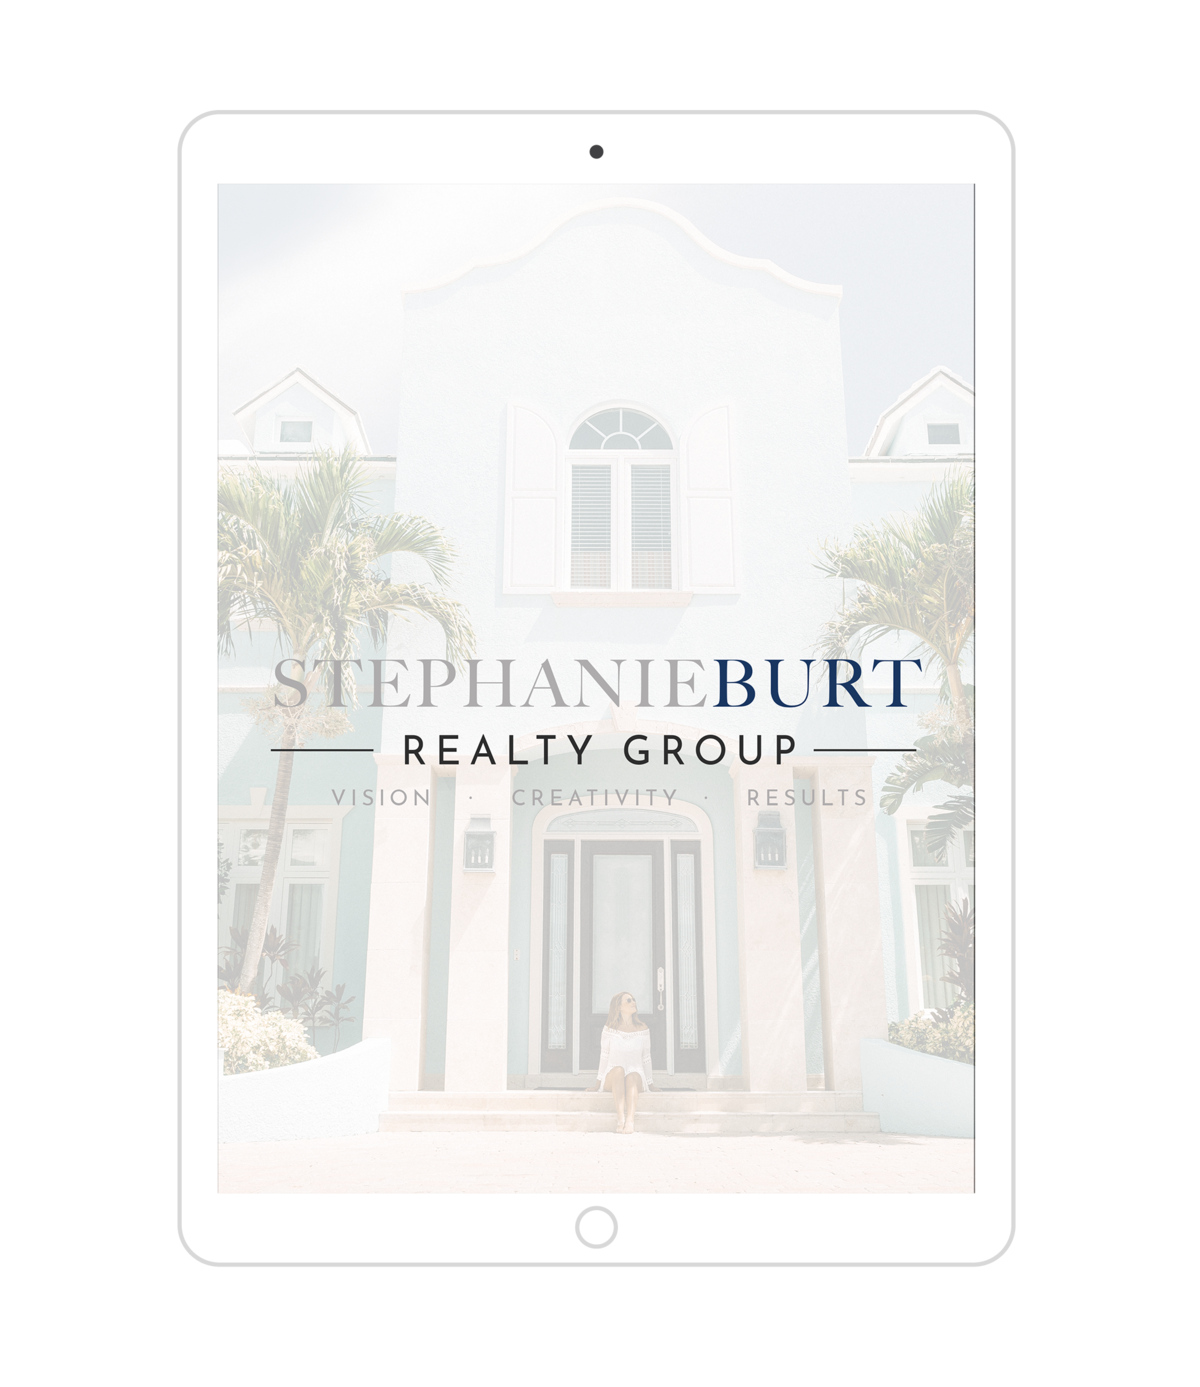 Stephanie Burt Realty Group Logo Design Mockup on iPad Screen